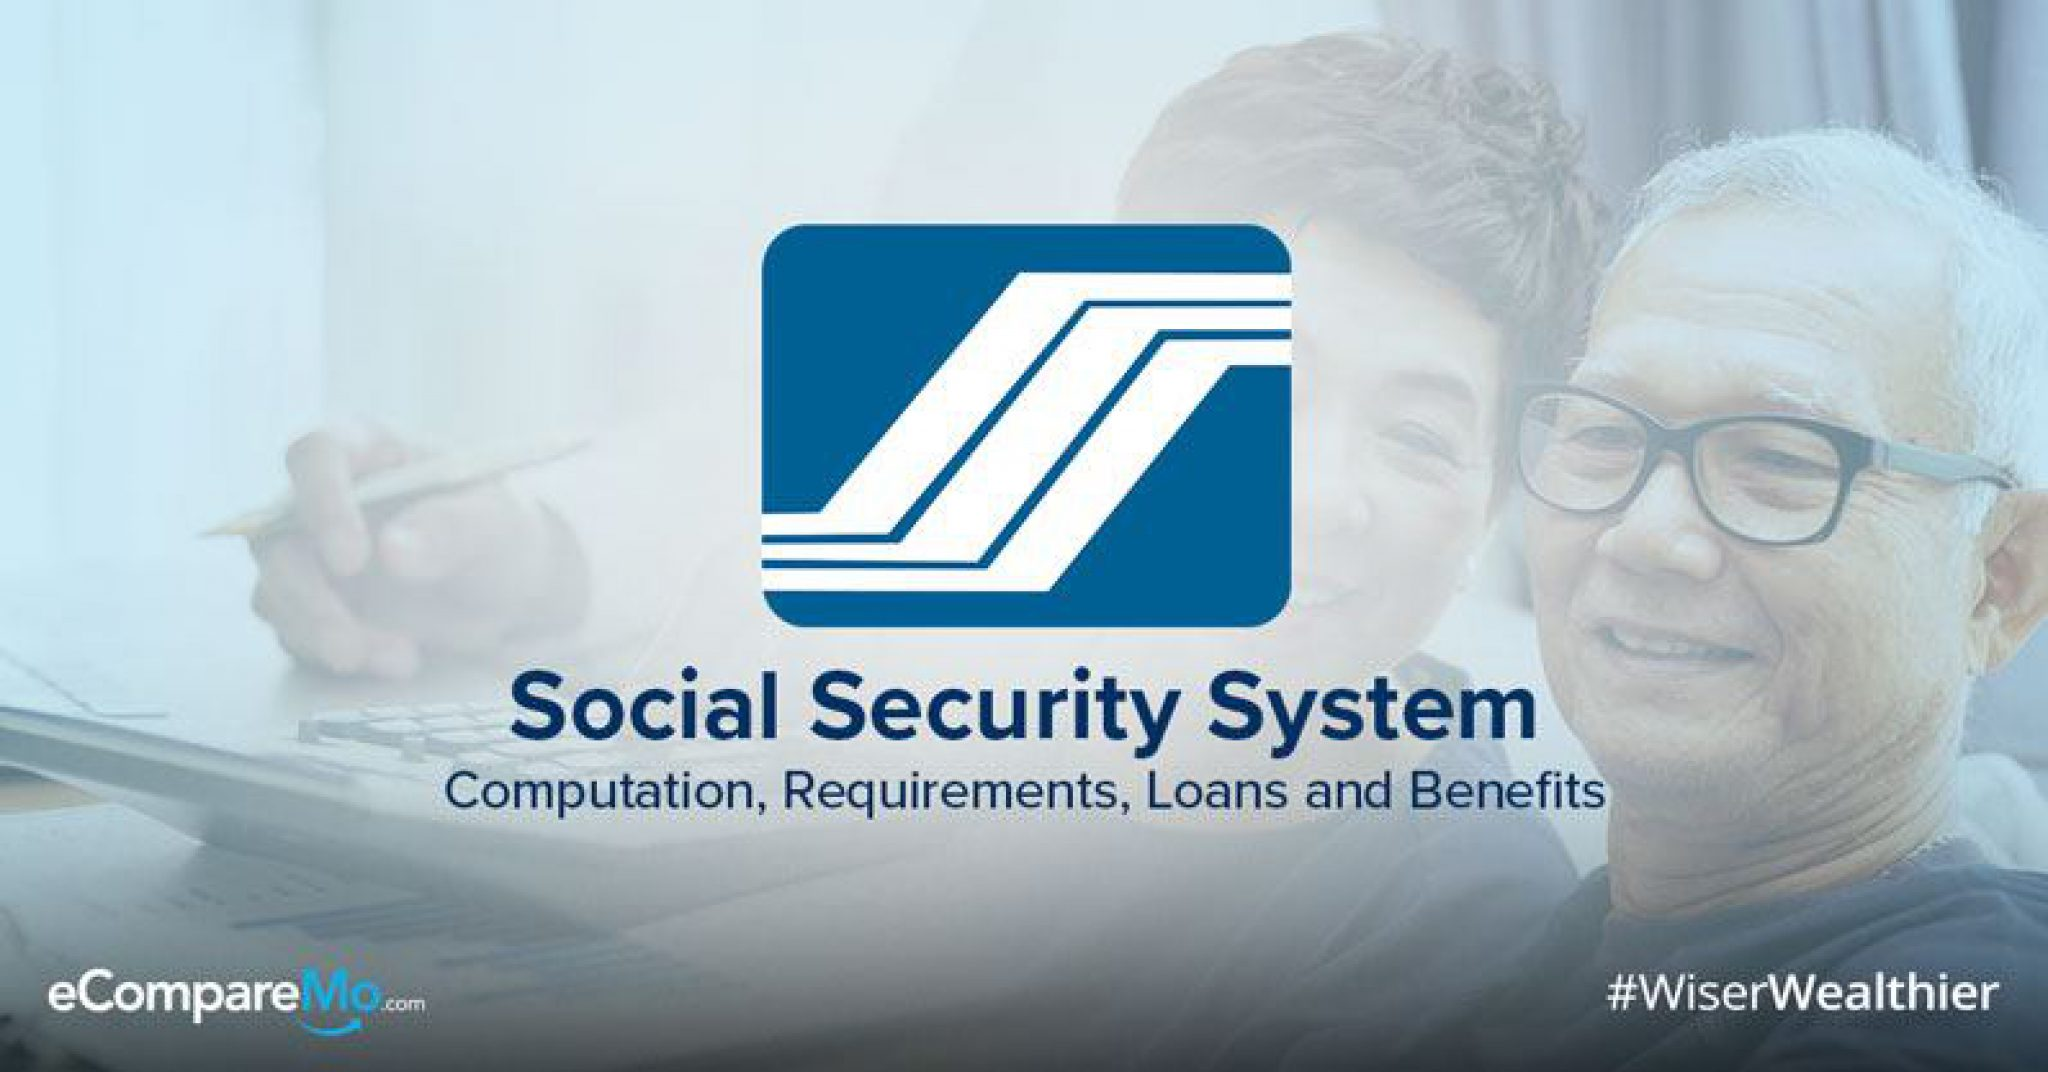 Sss Pension Computation Requirements Loans And Benefits